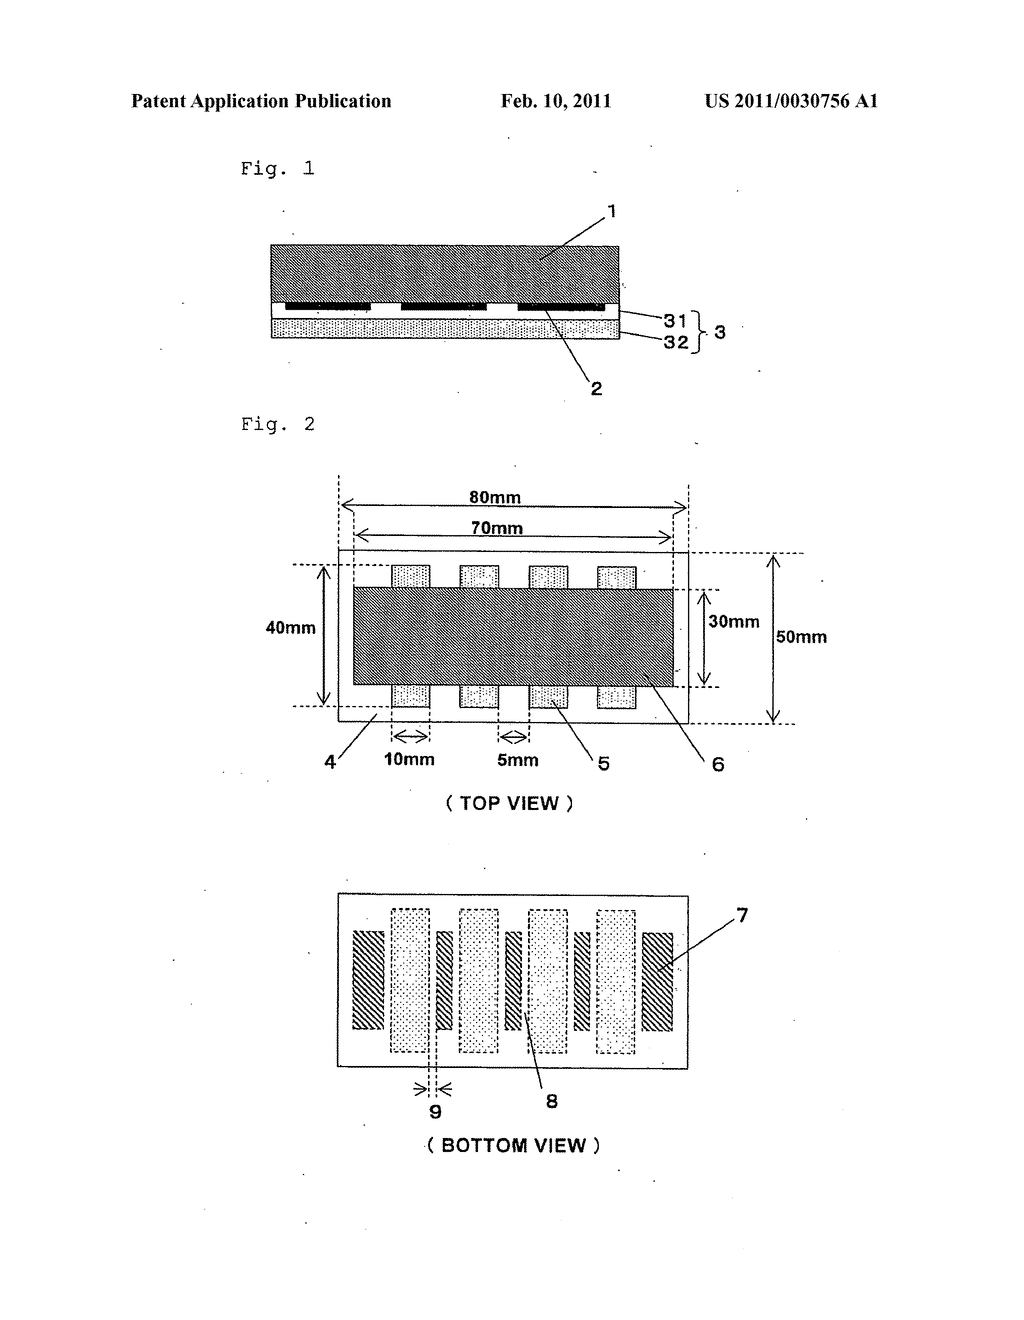 PRESSURE-SENSITIVE ADHESIVE SHEET FOR SOLAR PANEL, SOLAR PANEL USING THE PRESSURE-SENSITIVE ADHESIVE SHEET, AND METHOD FOR MANUFACTURING SOLAR PANEL USING THE PRESSURE-SENSITIVE ADHESIVE SHEET - diagram, schematic, and image 02